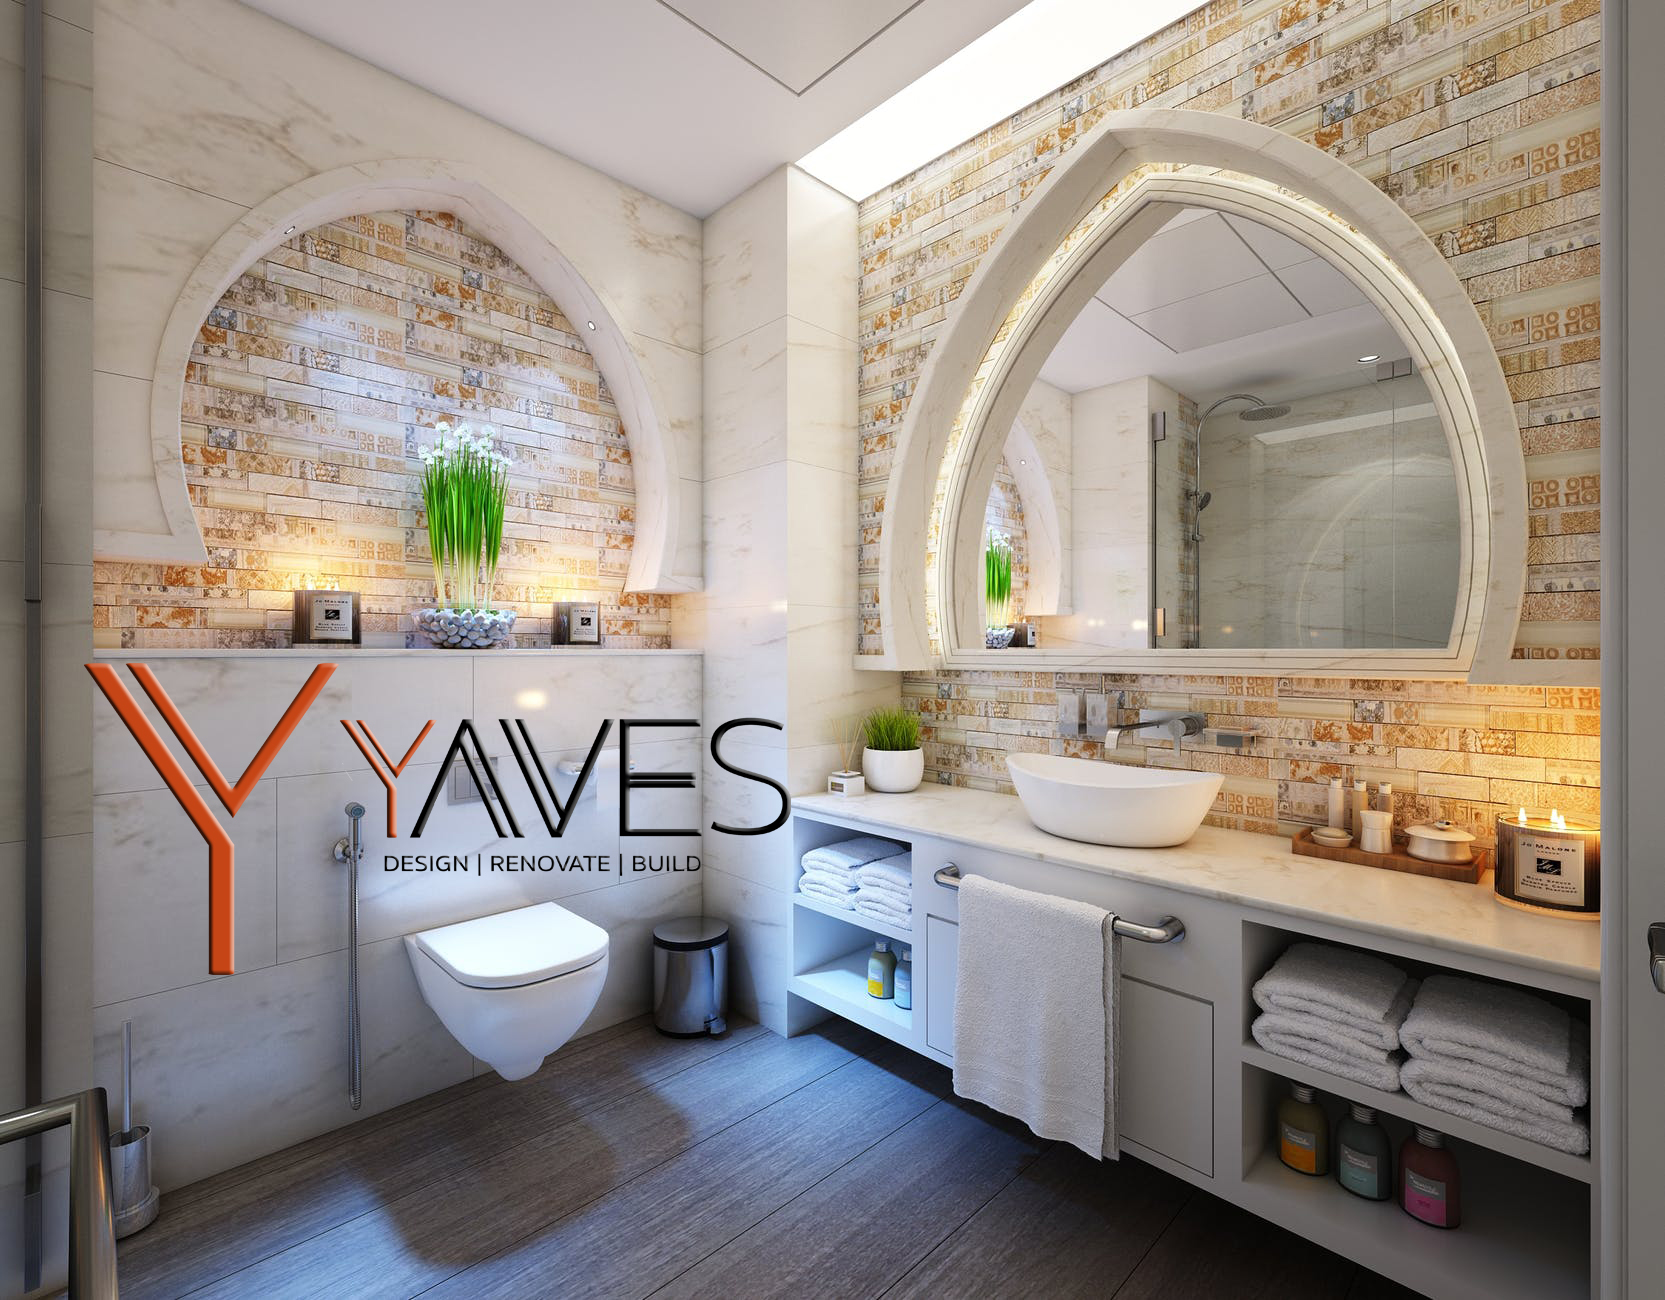 yaves bathroom